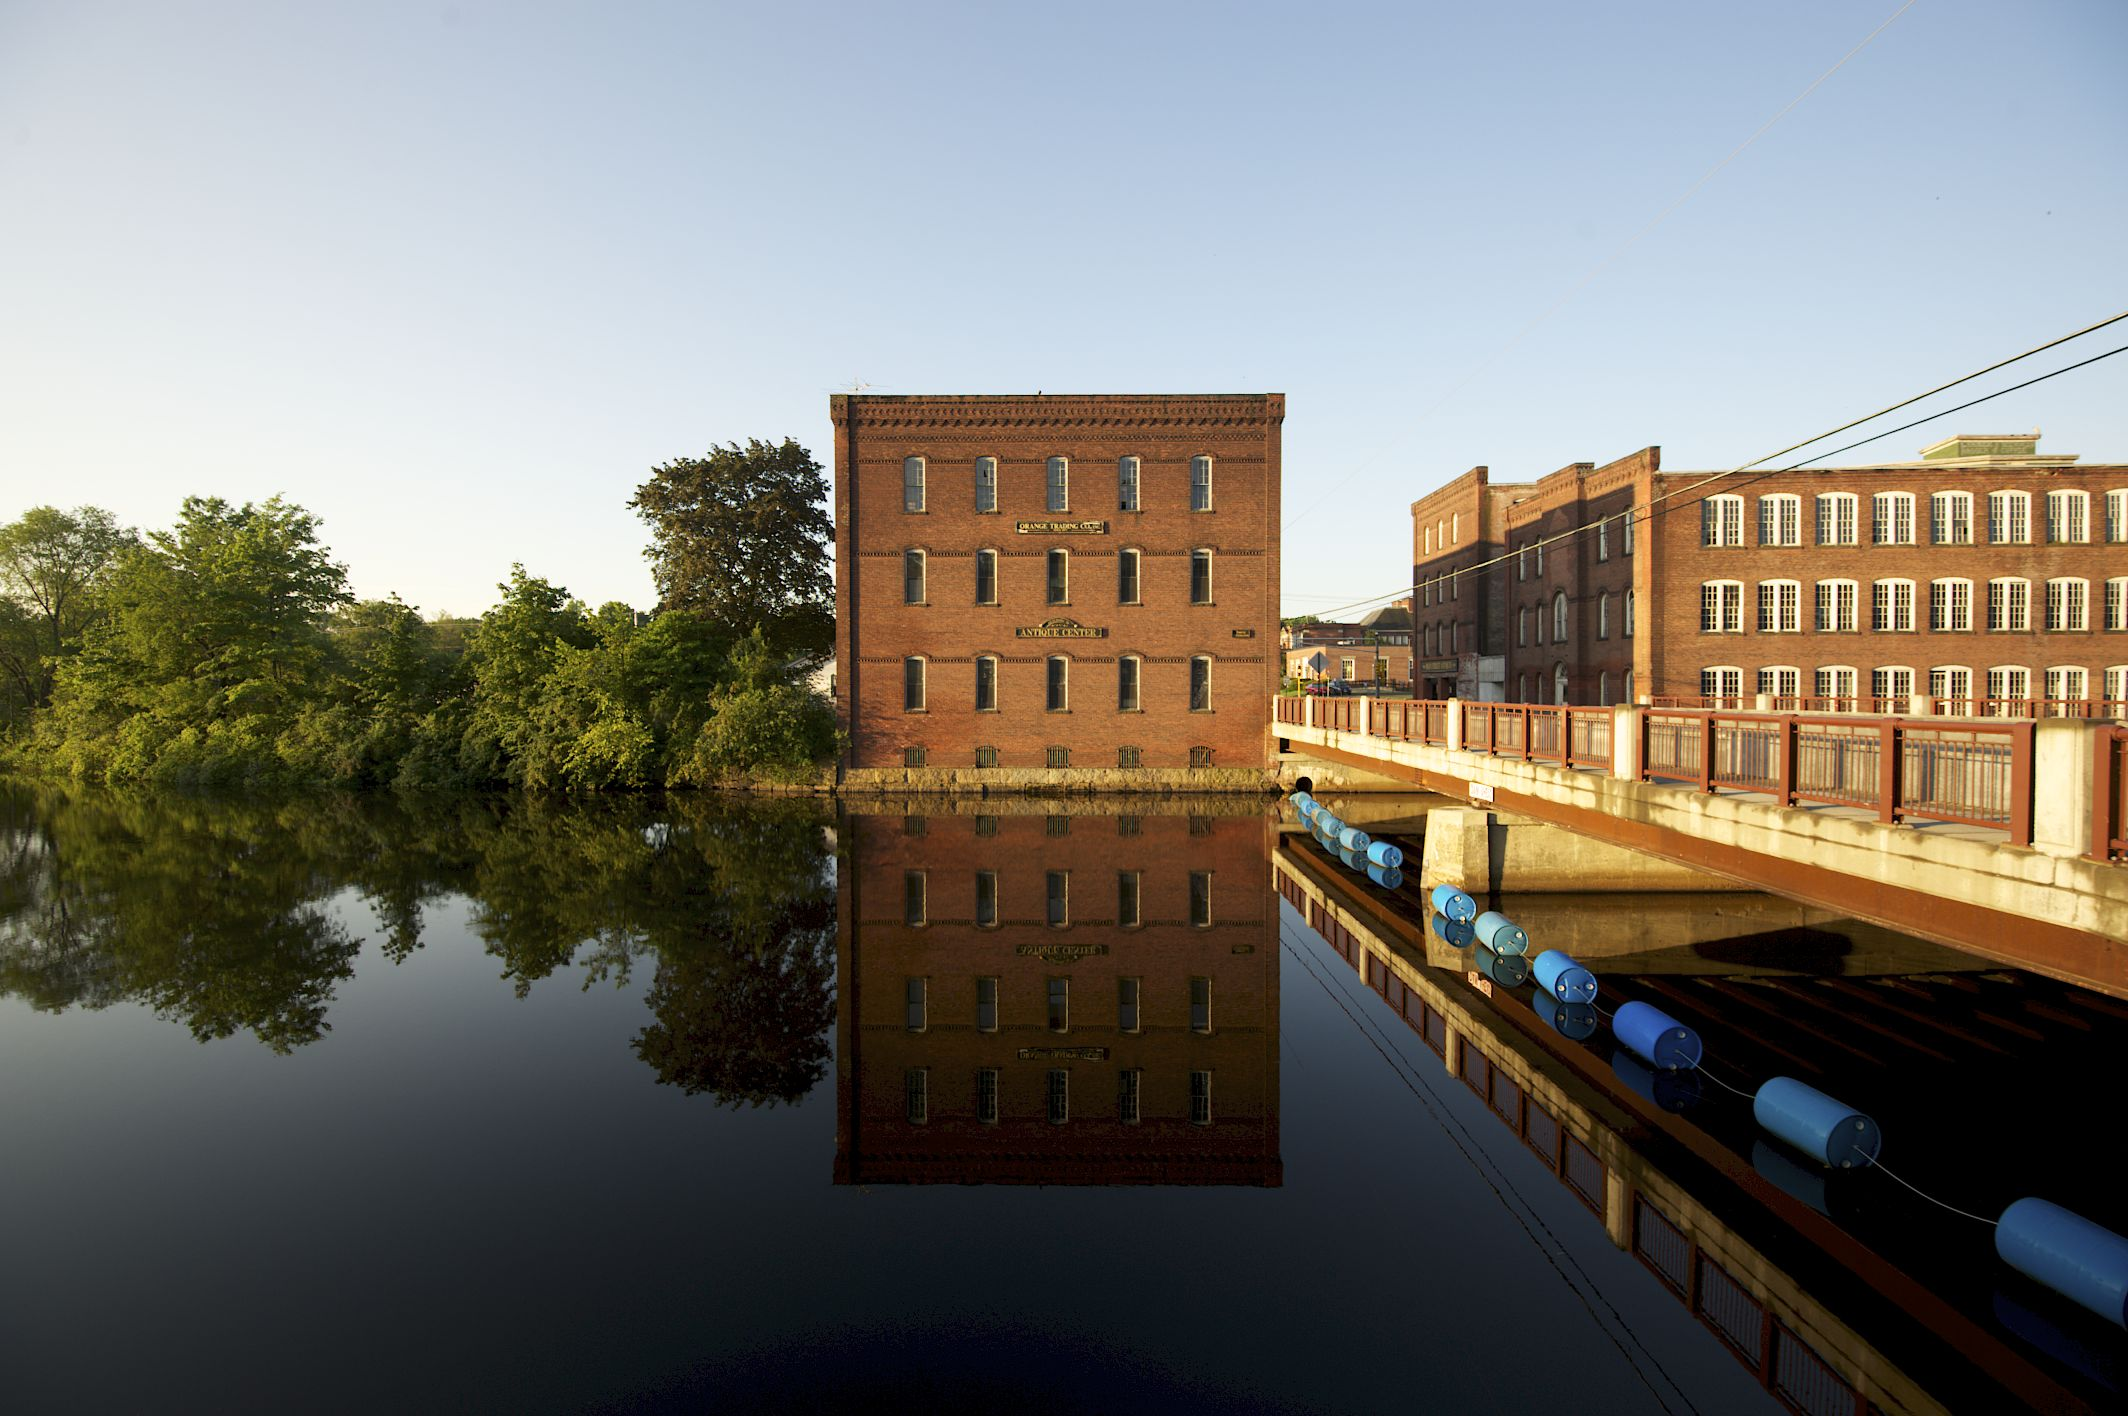 Millers River and Mill Building in Orange, Massachusetts